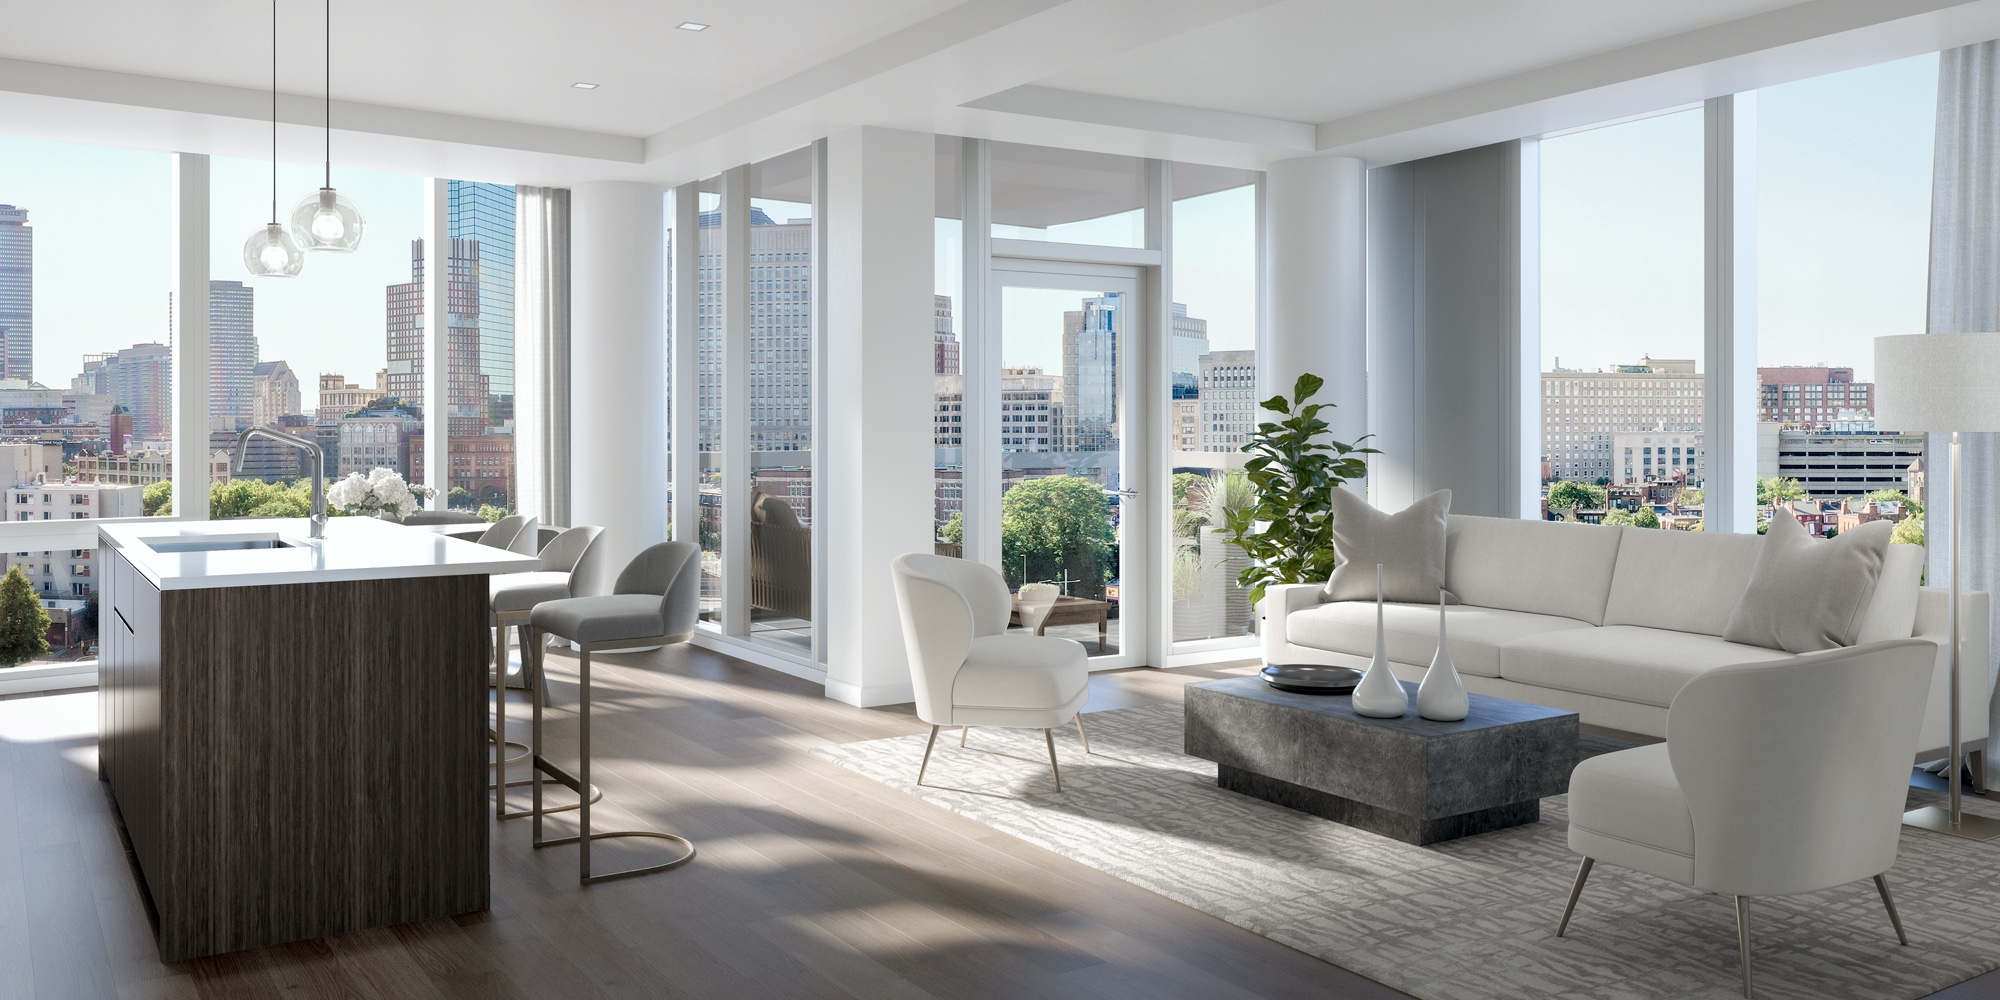 Bedroom in a 100 Shawmut unit with a large window overlooking Boston's South End